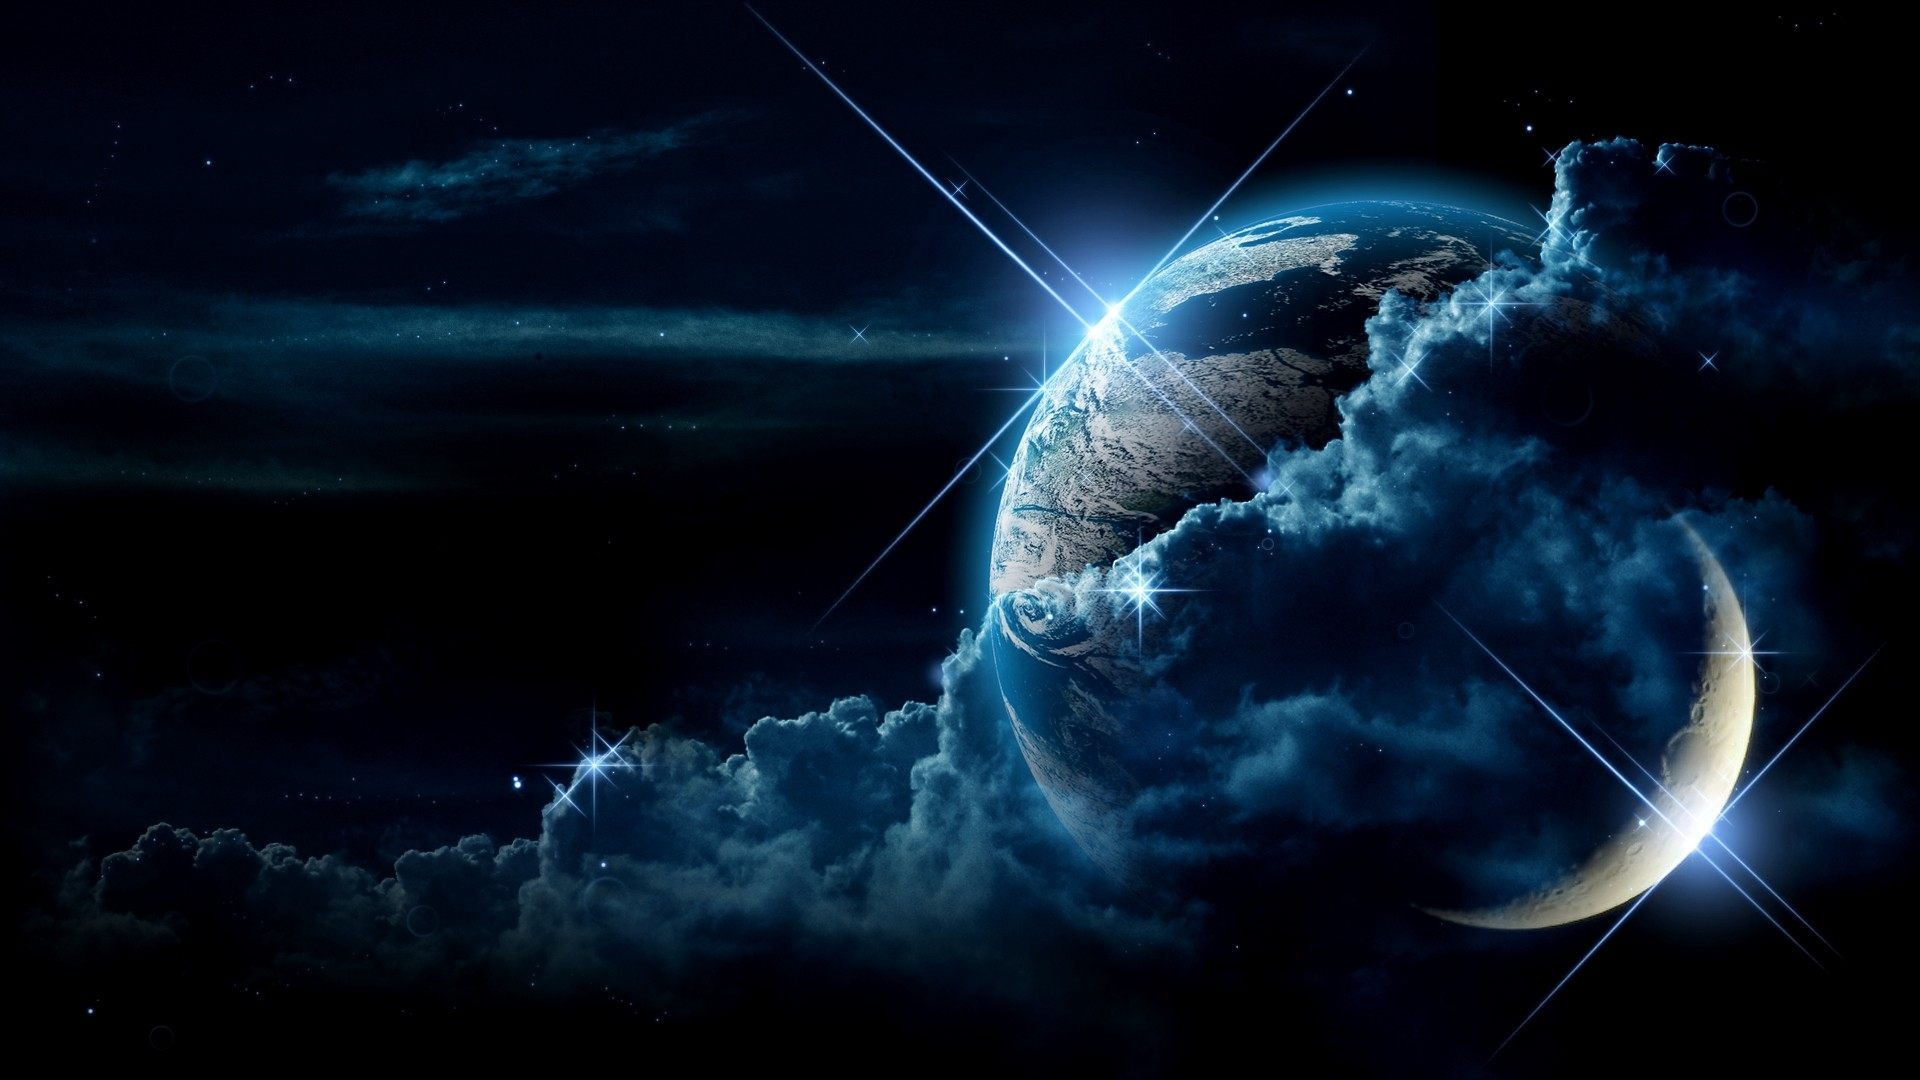 space planets moon earth planet sci fi stars wallpaper 1920x1080 1920x1080